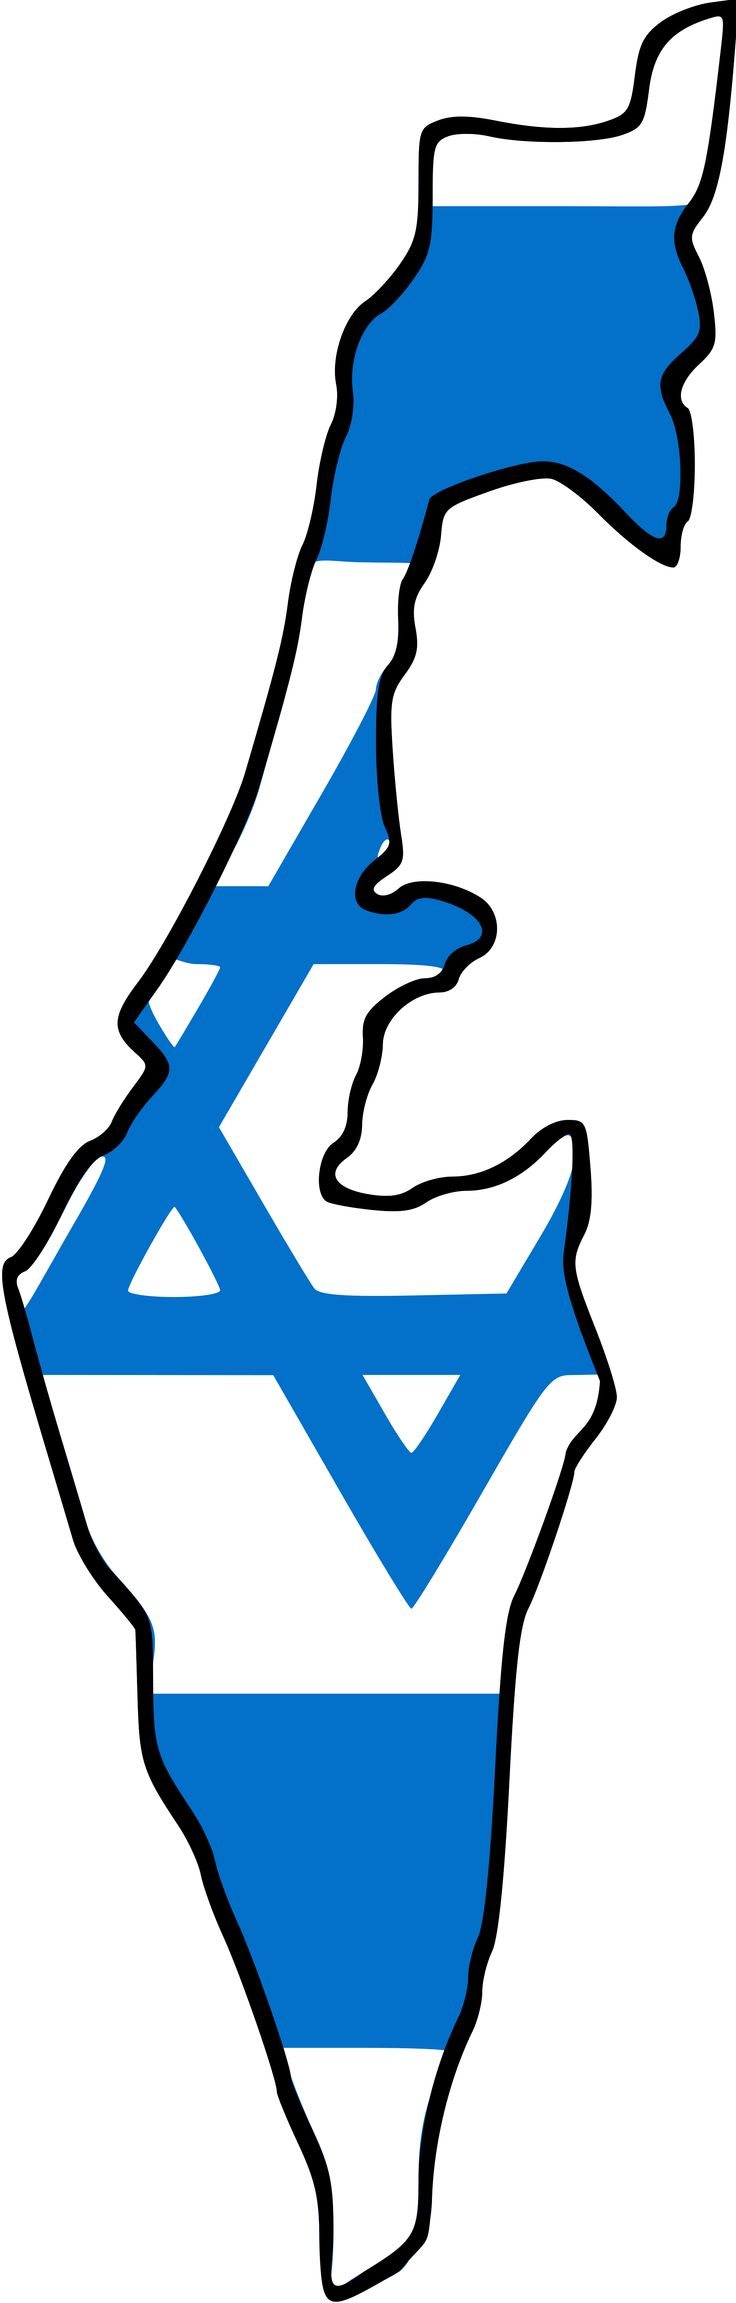 78 best flags דגלים images on pinterest flags travel and flag